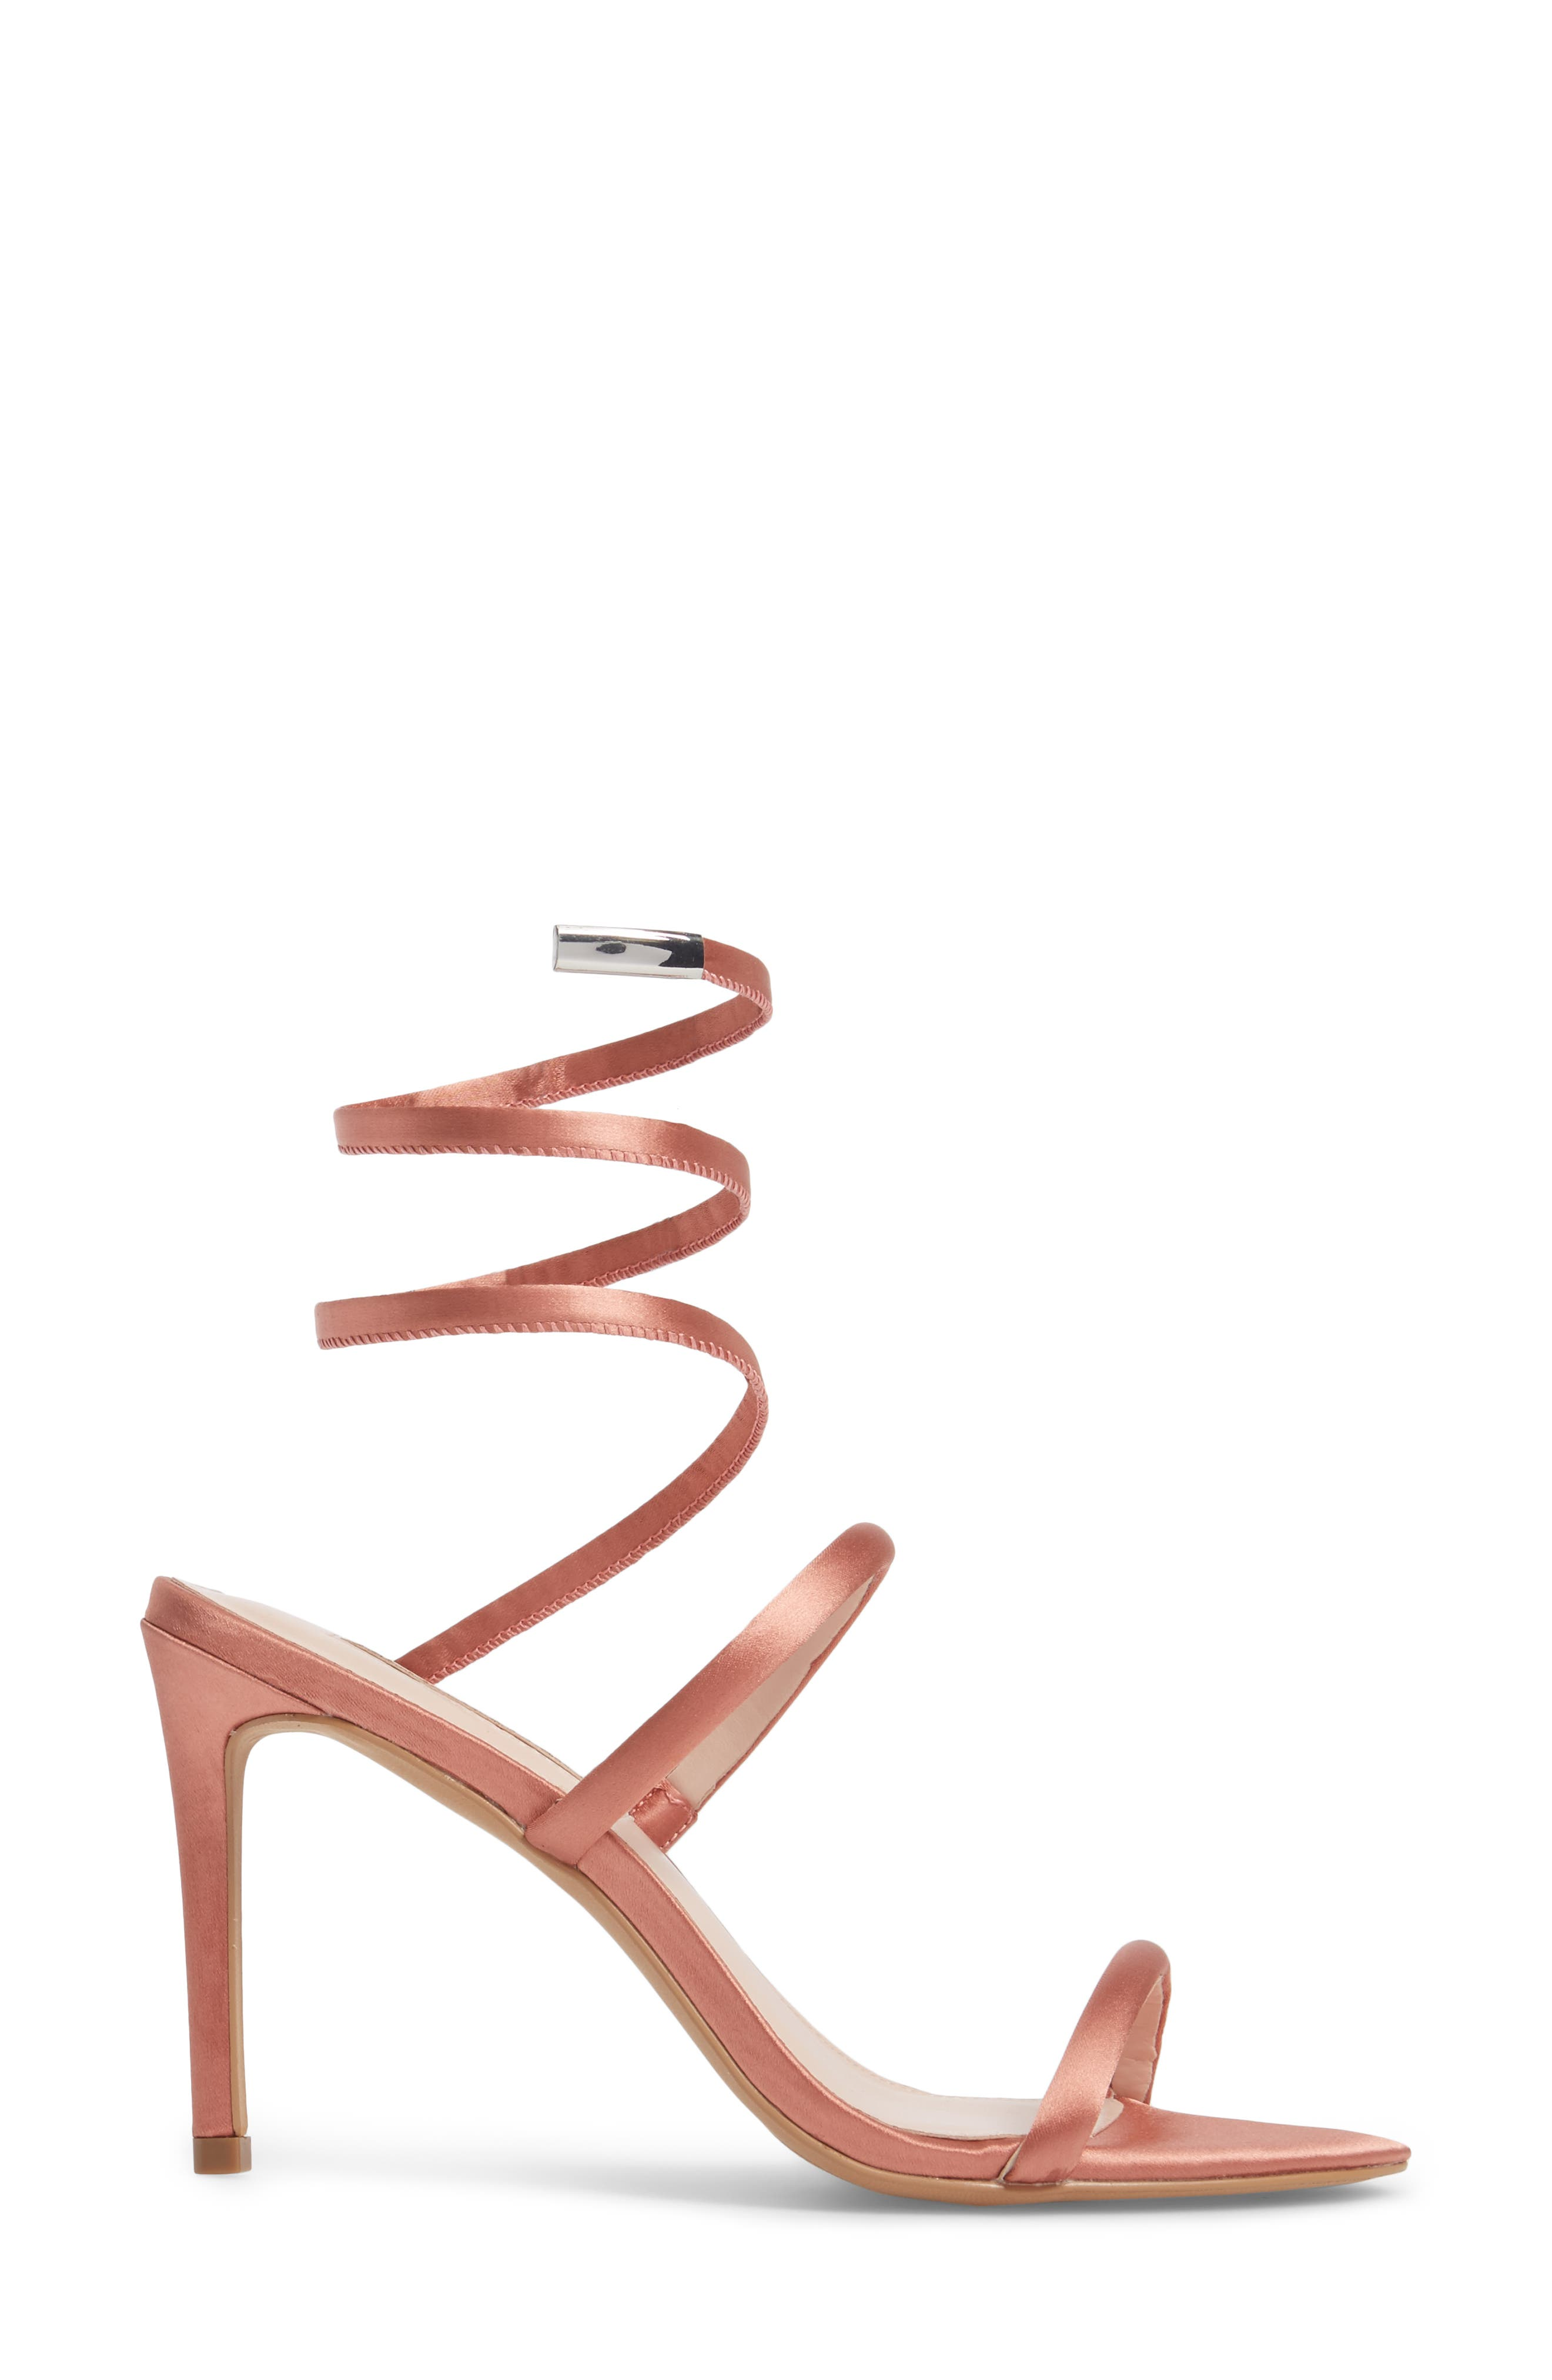 Joia Ankle Wrap Sandal,                             Alternate thumbnail 3, color,                             Dusty Rose Fabric